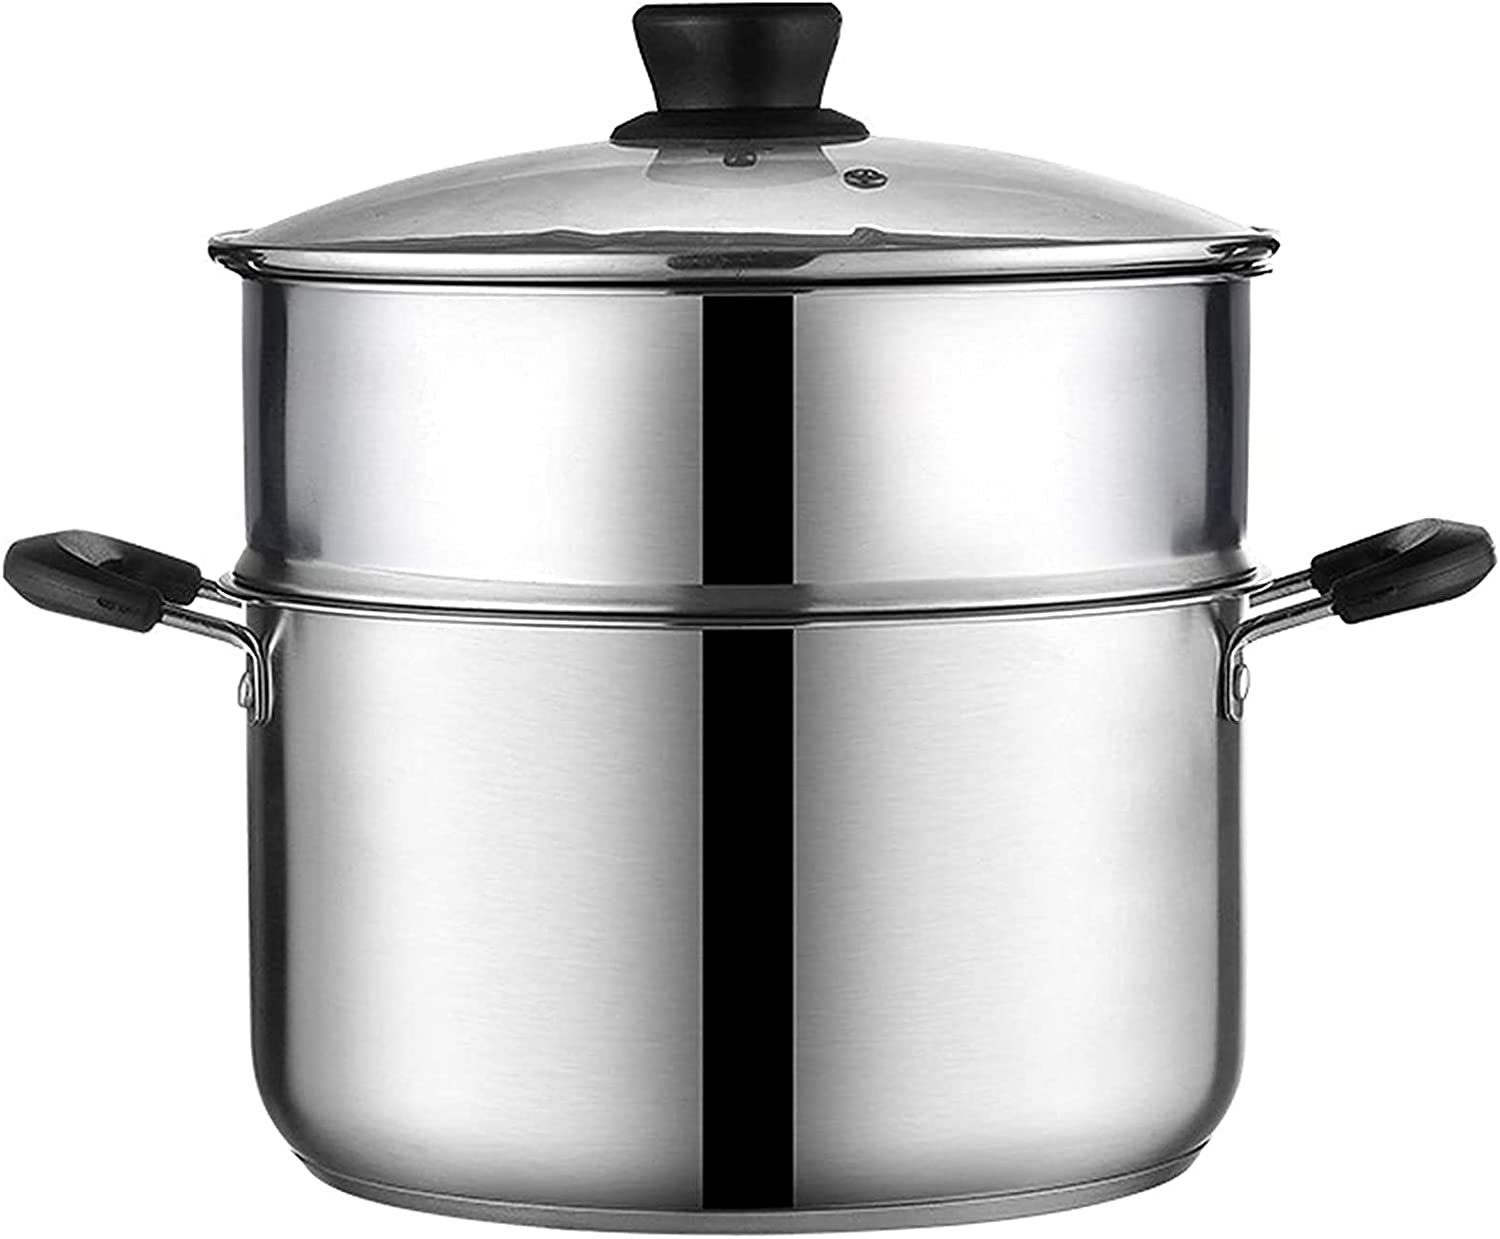 Pans for cooking Steamer Pot Stainless Steel Pot Food Steamer Steamer Cooker Pan Set with Lid Induction Cooker Pan for Kitchen Cooking Tool Style 1 22cm